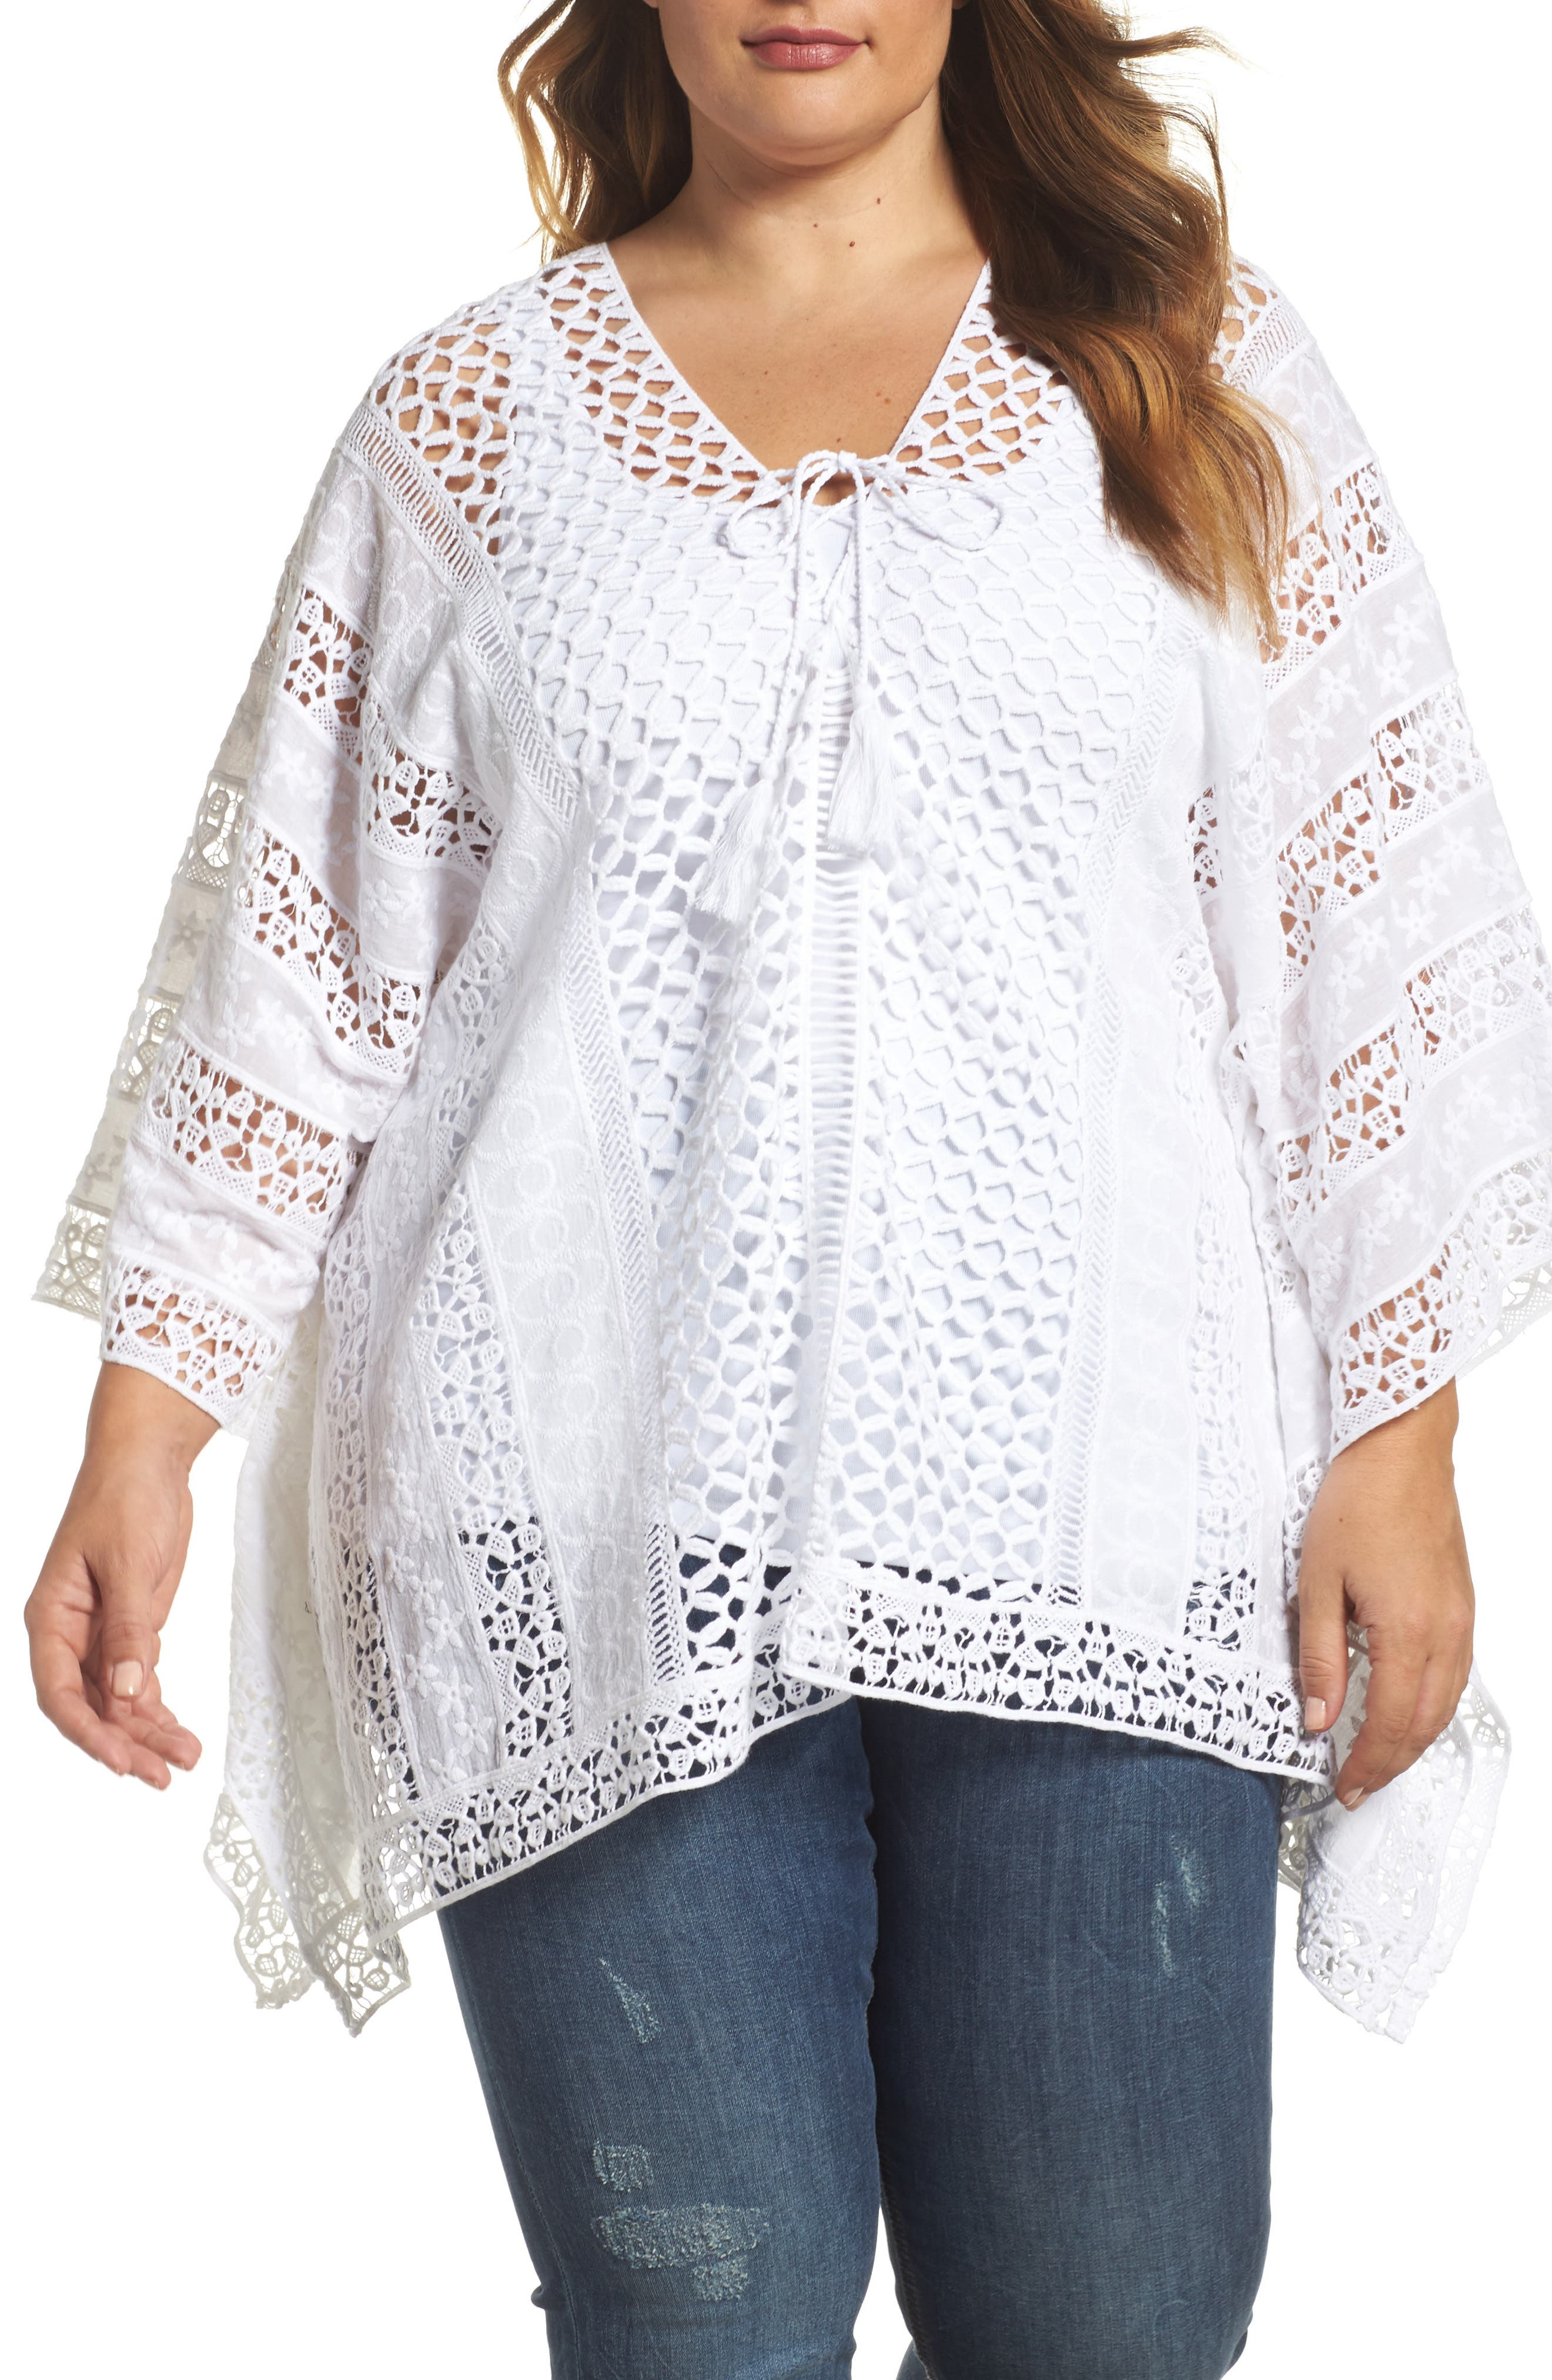 Main Image - XCVI Wearables Jace Embroidered Cotton Poncho (Plus Size)